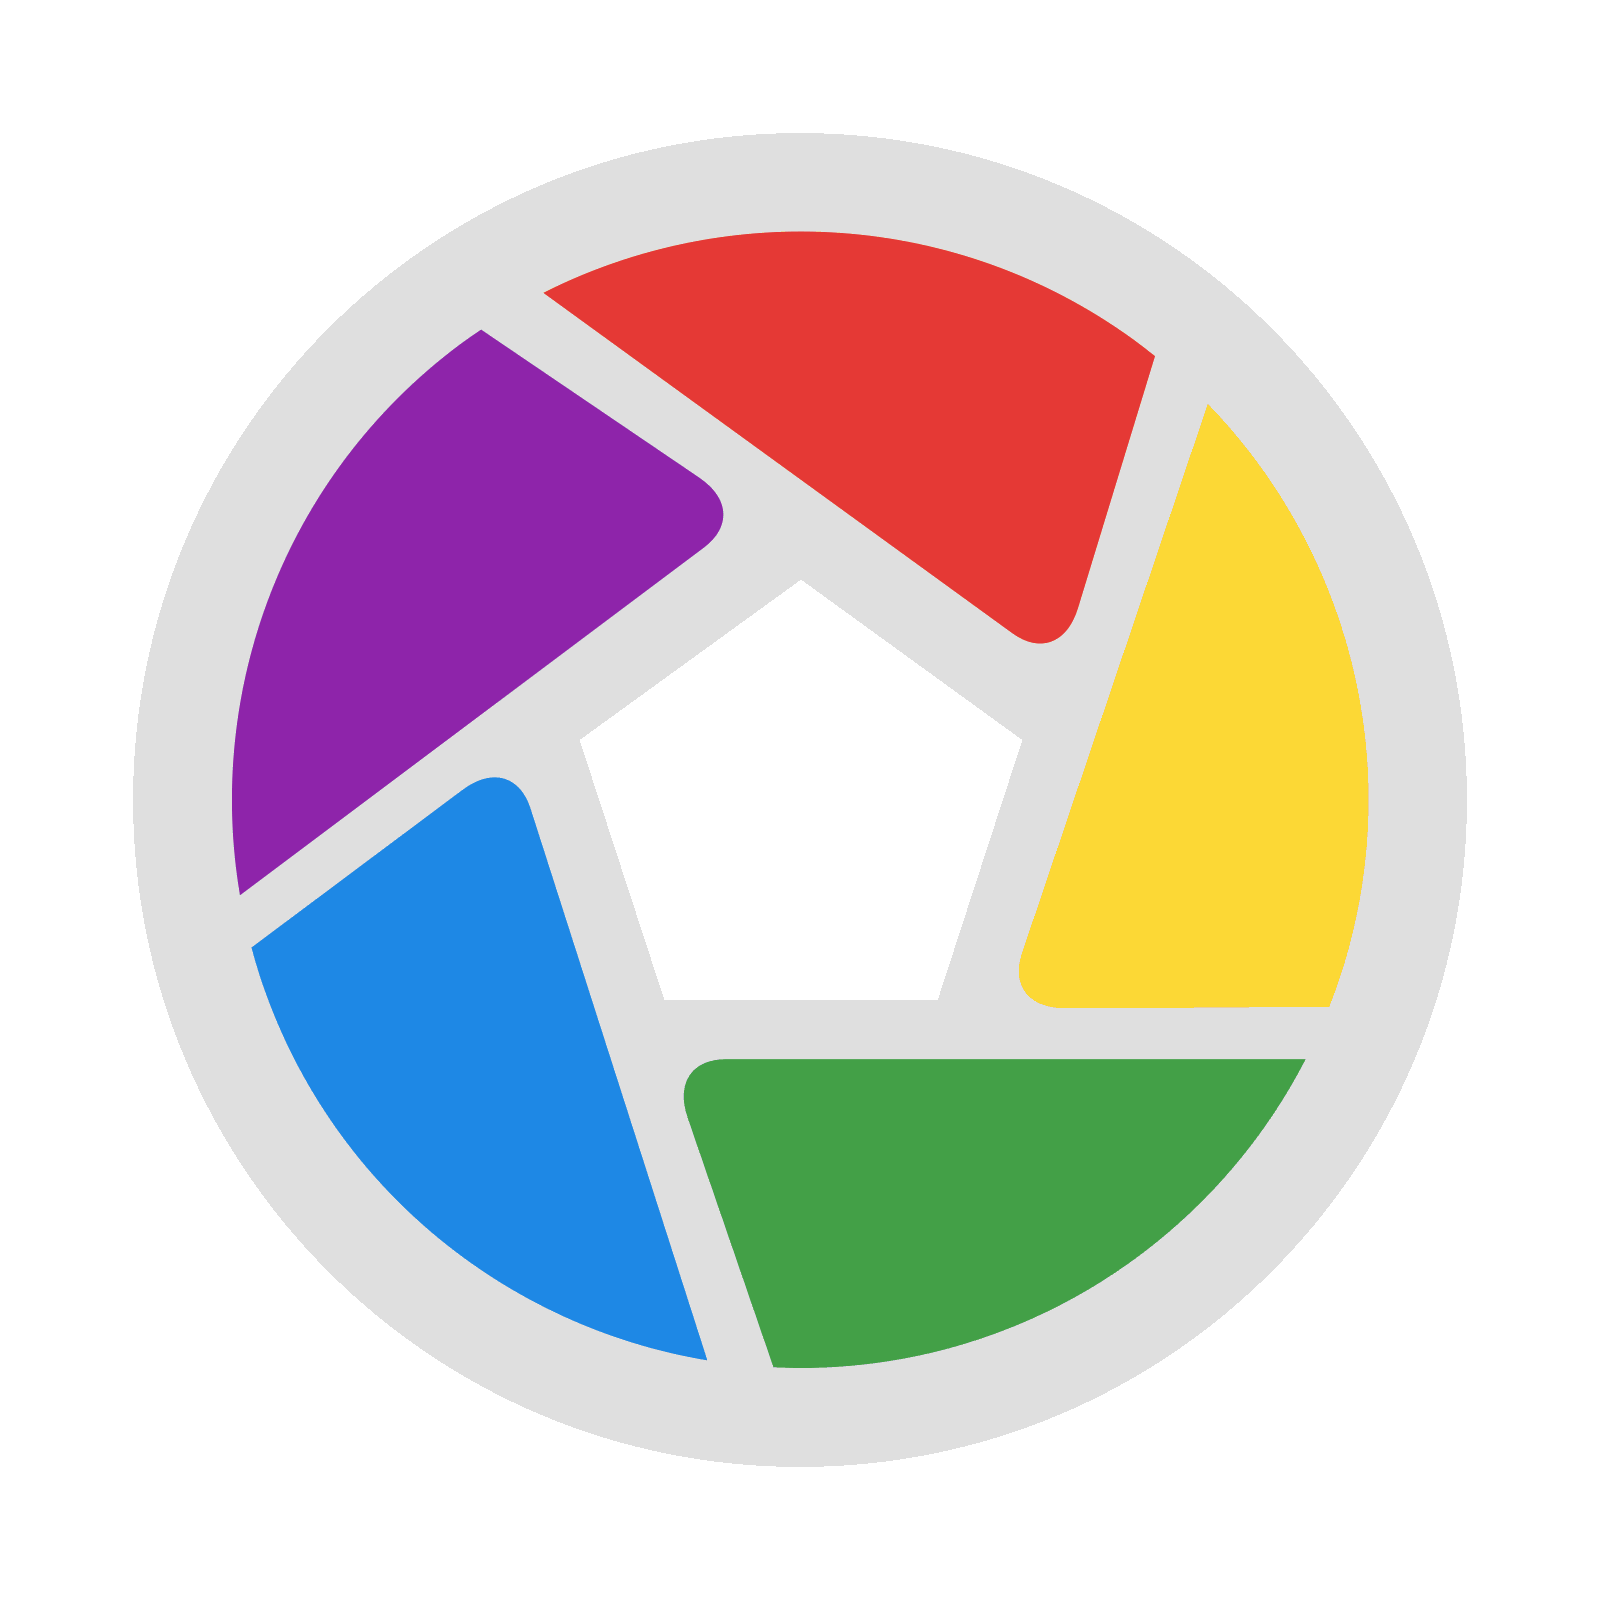 Picasa Icon. Png 50 Px - Picasa, Transparent background PNG HD thumbnail